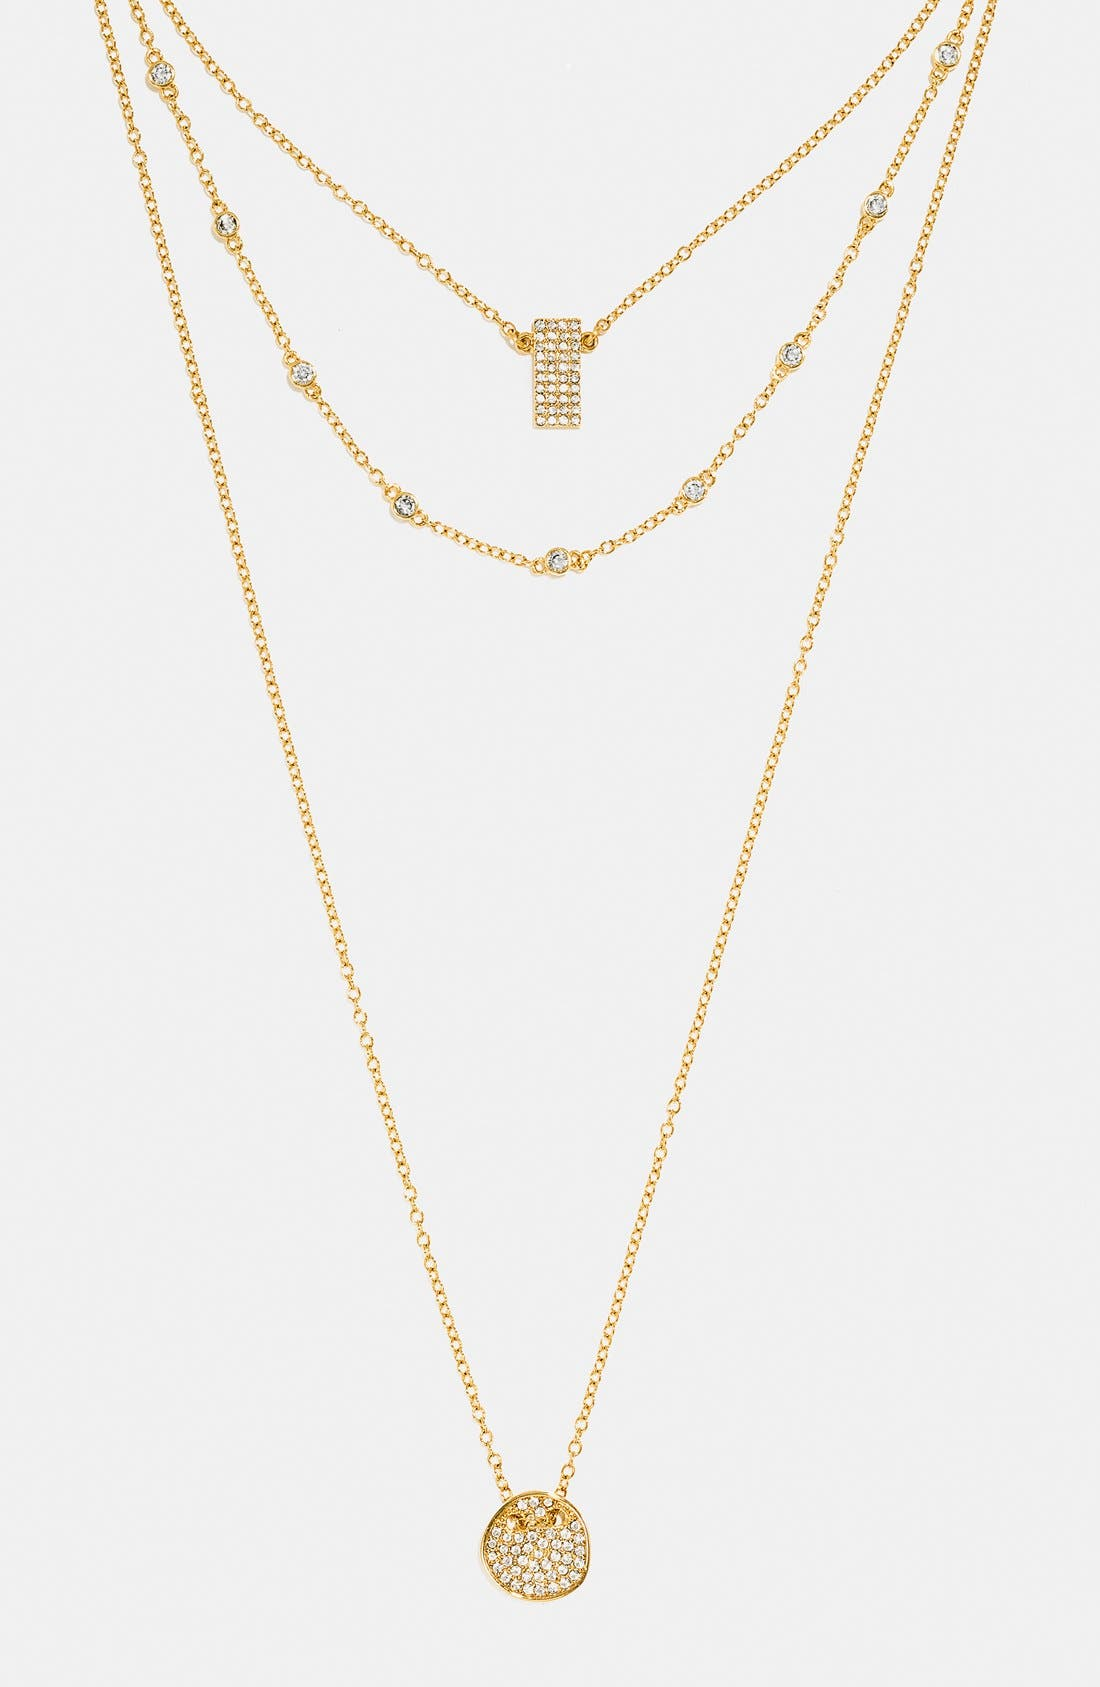 Main Image - BaubleBar 'Ice' Layer Necklace